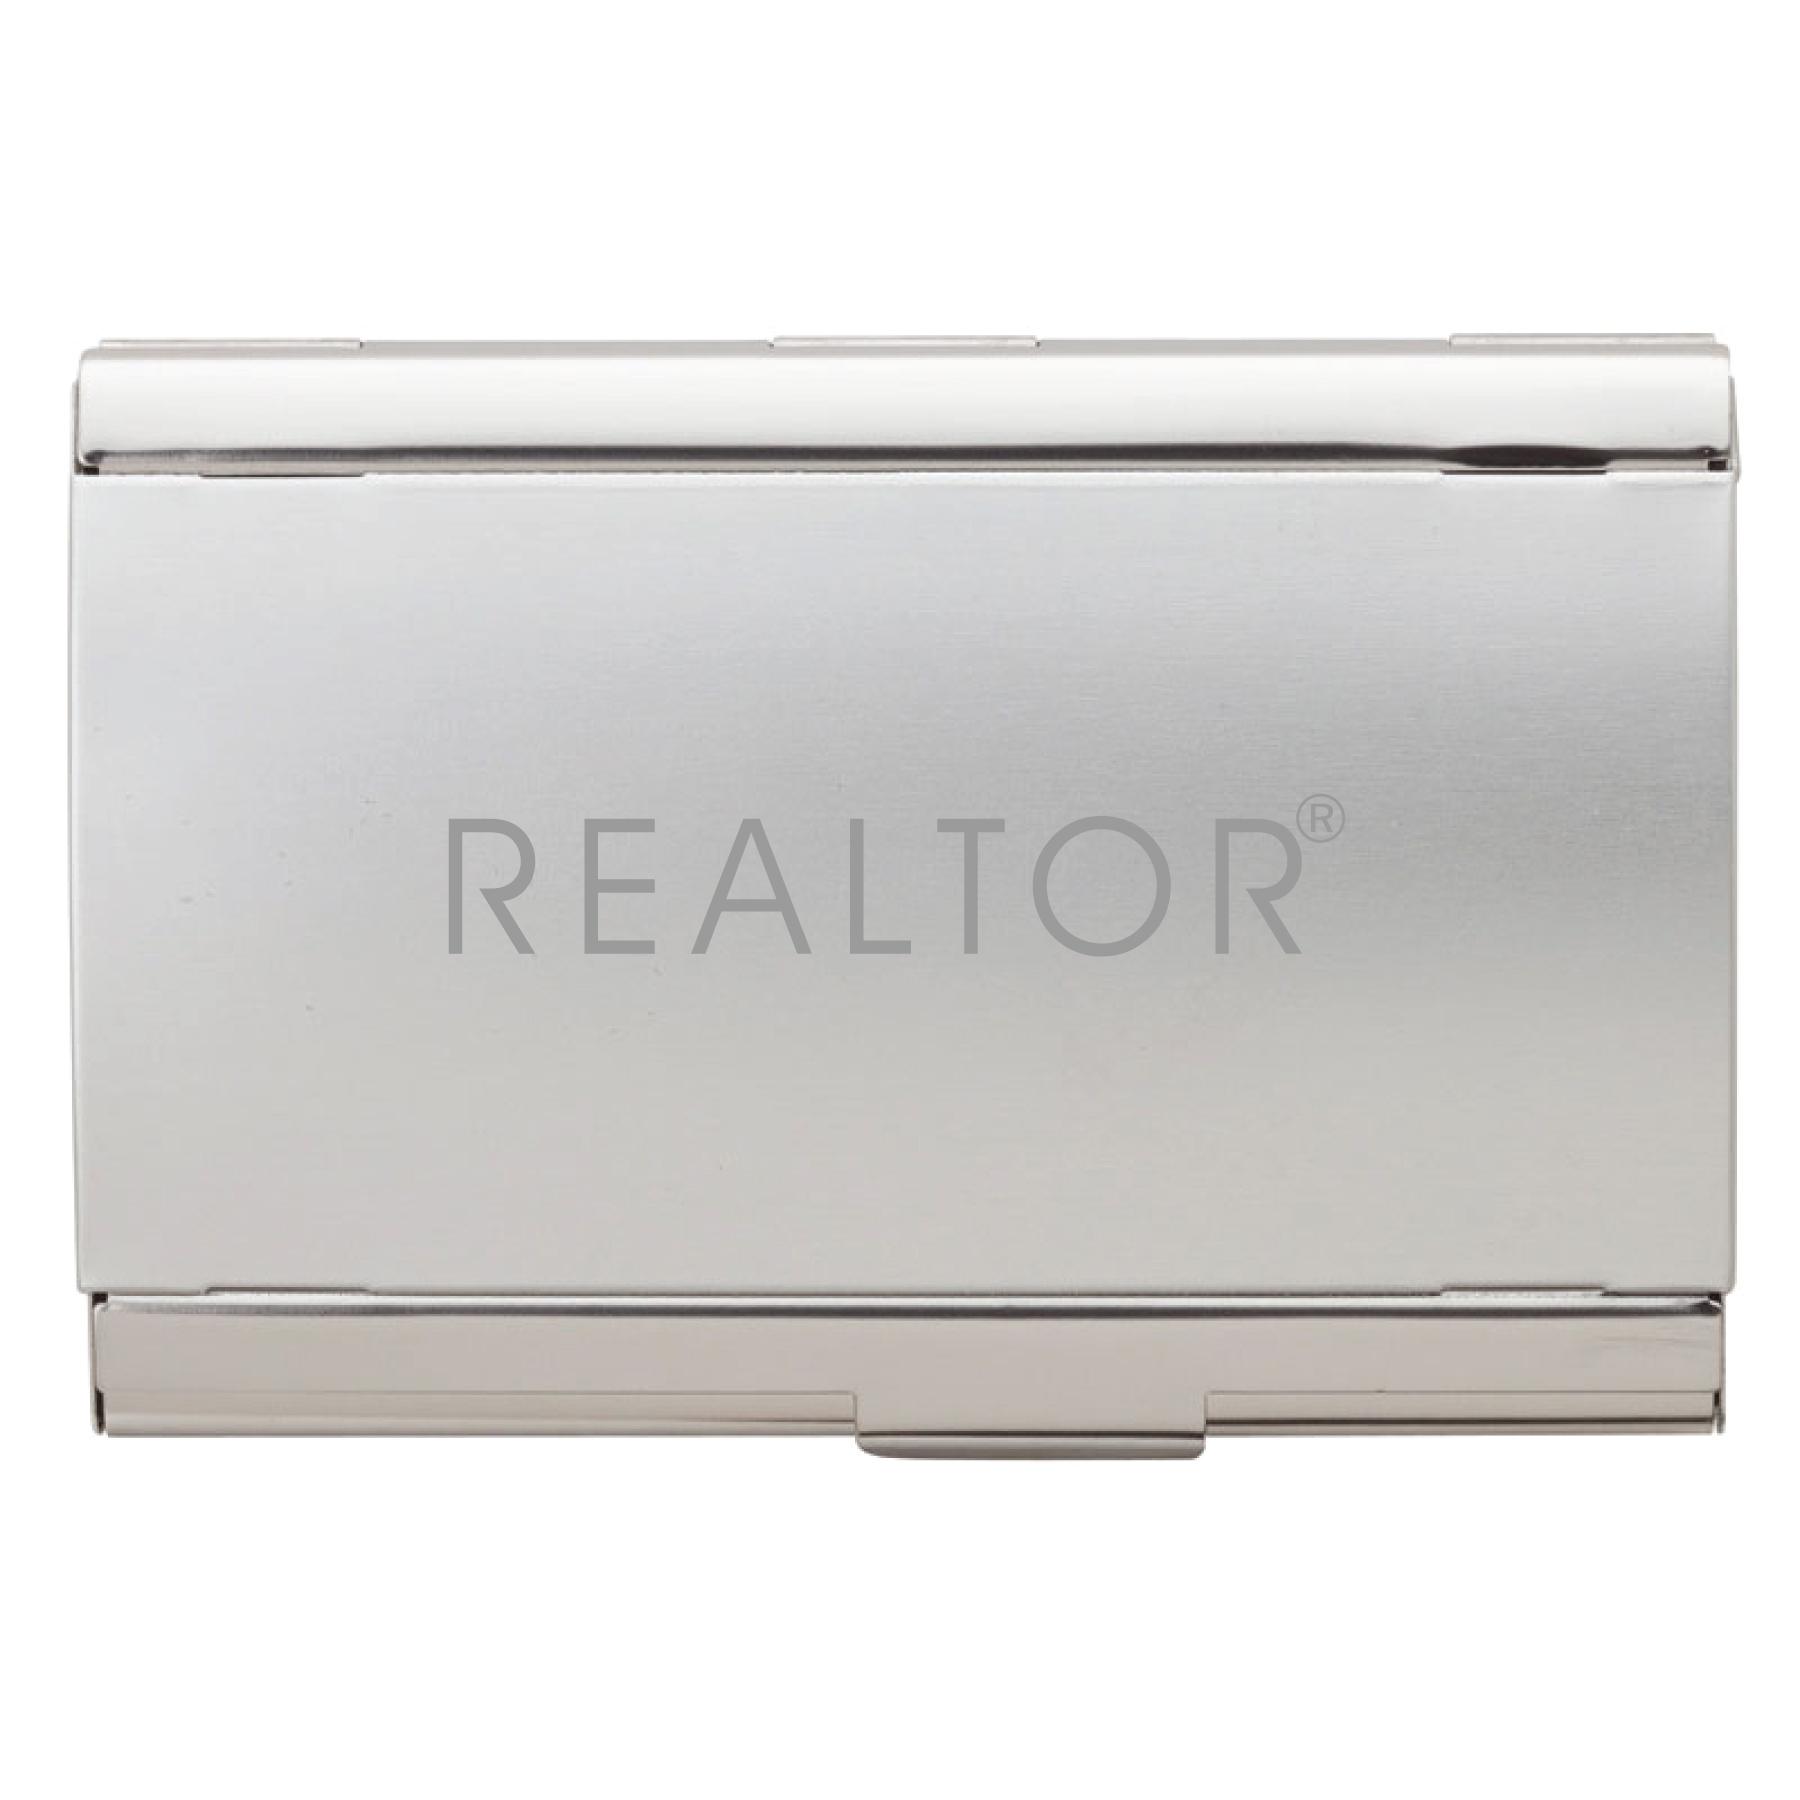 Realtor denver business card case rts4677 denver business card case rts4677 colourmoves